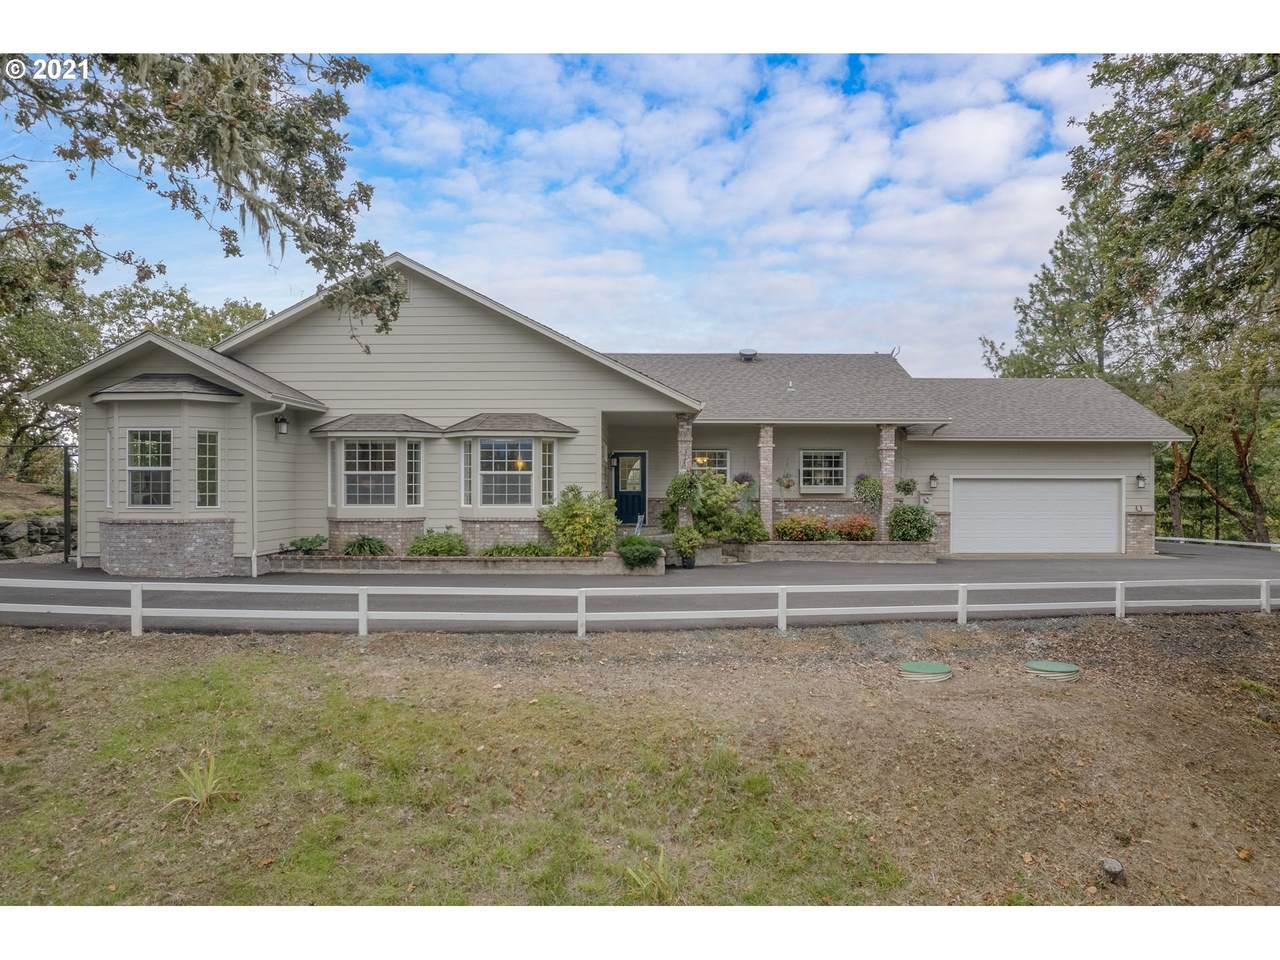 944 Cattle Dr - Photo 1